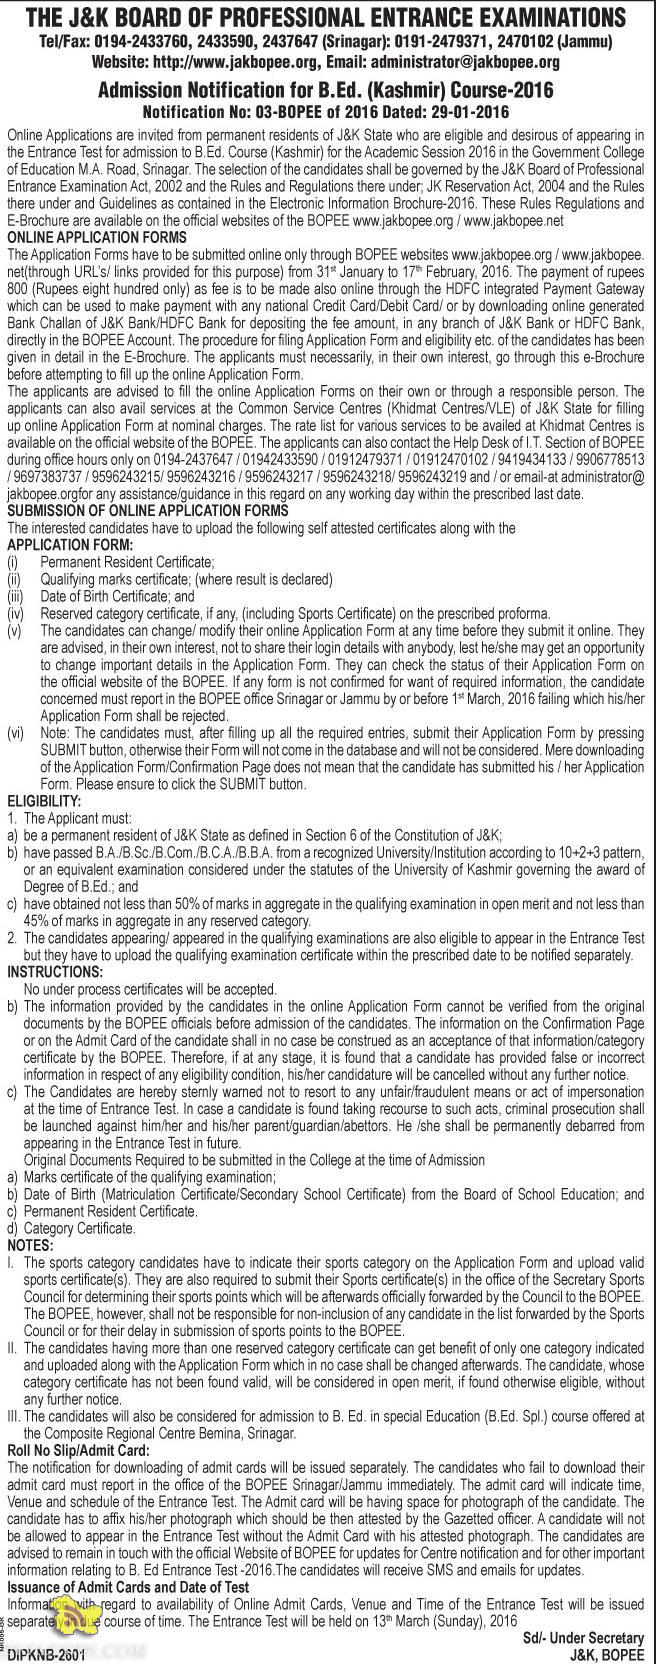 JKBOPEE Admission Notification for B.Ed. (Kashmir) Course-2016